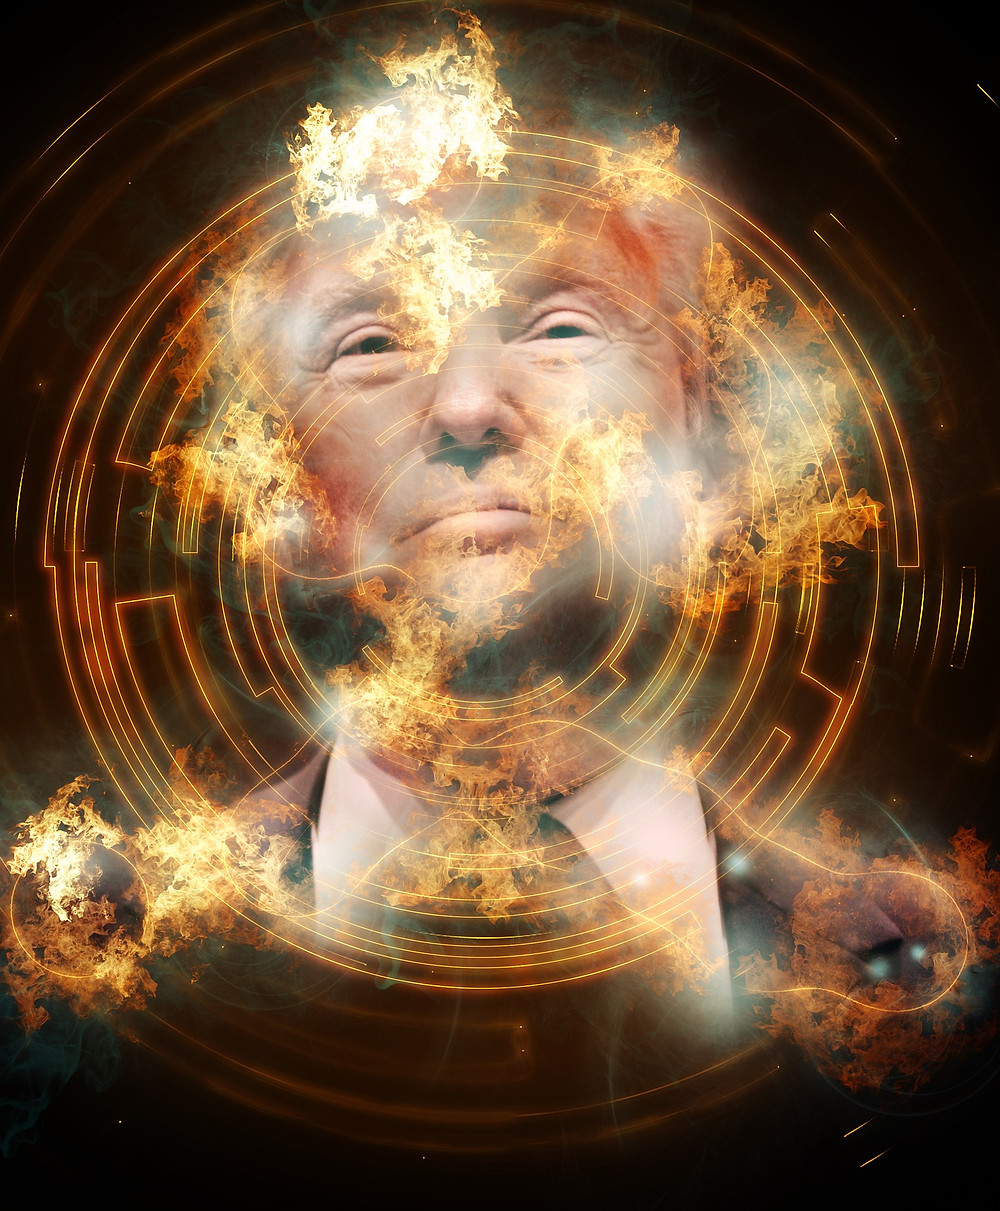 Trump believes the world revolves around him. He is a danger to the world.